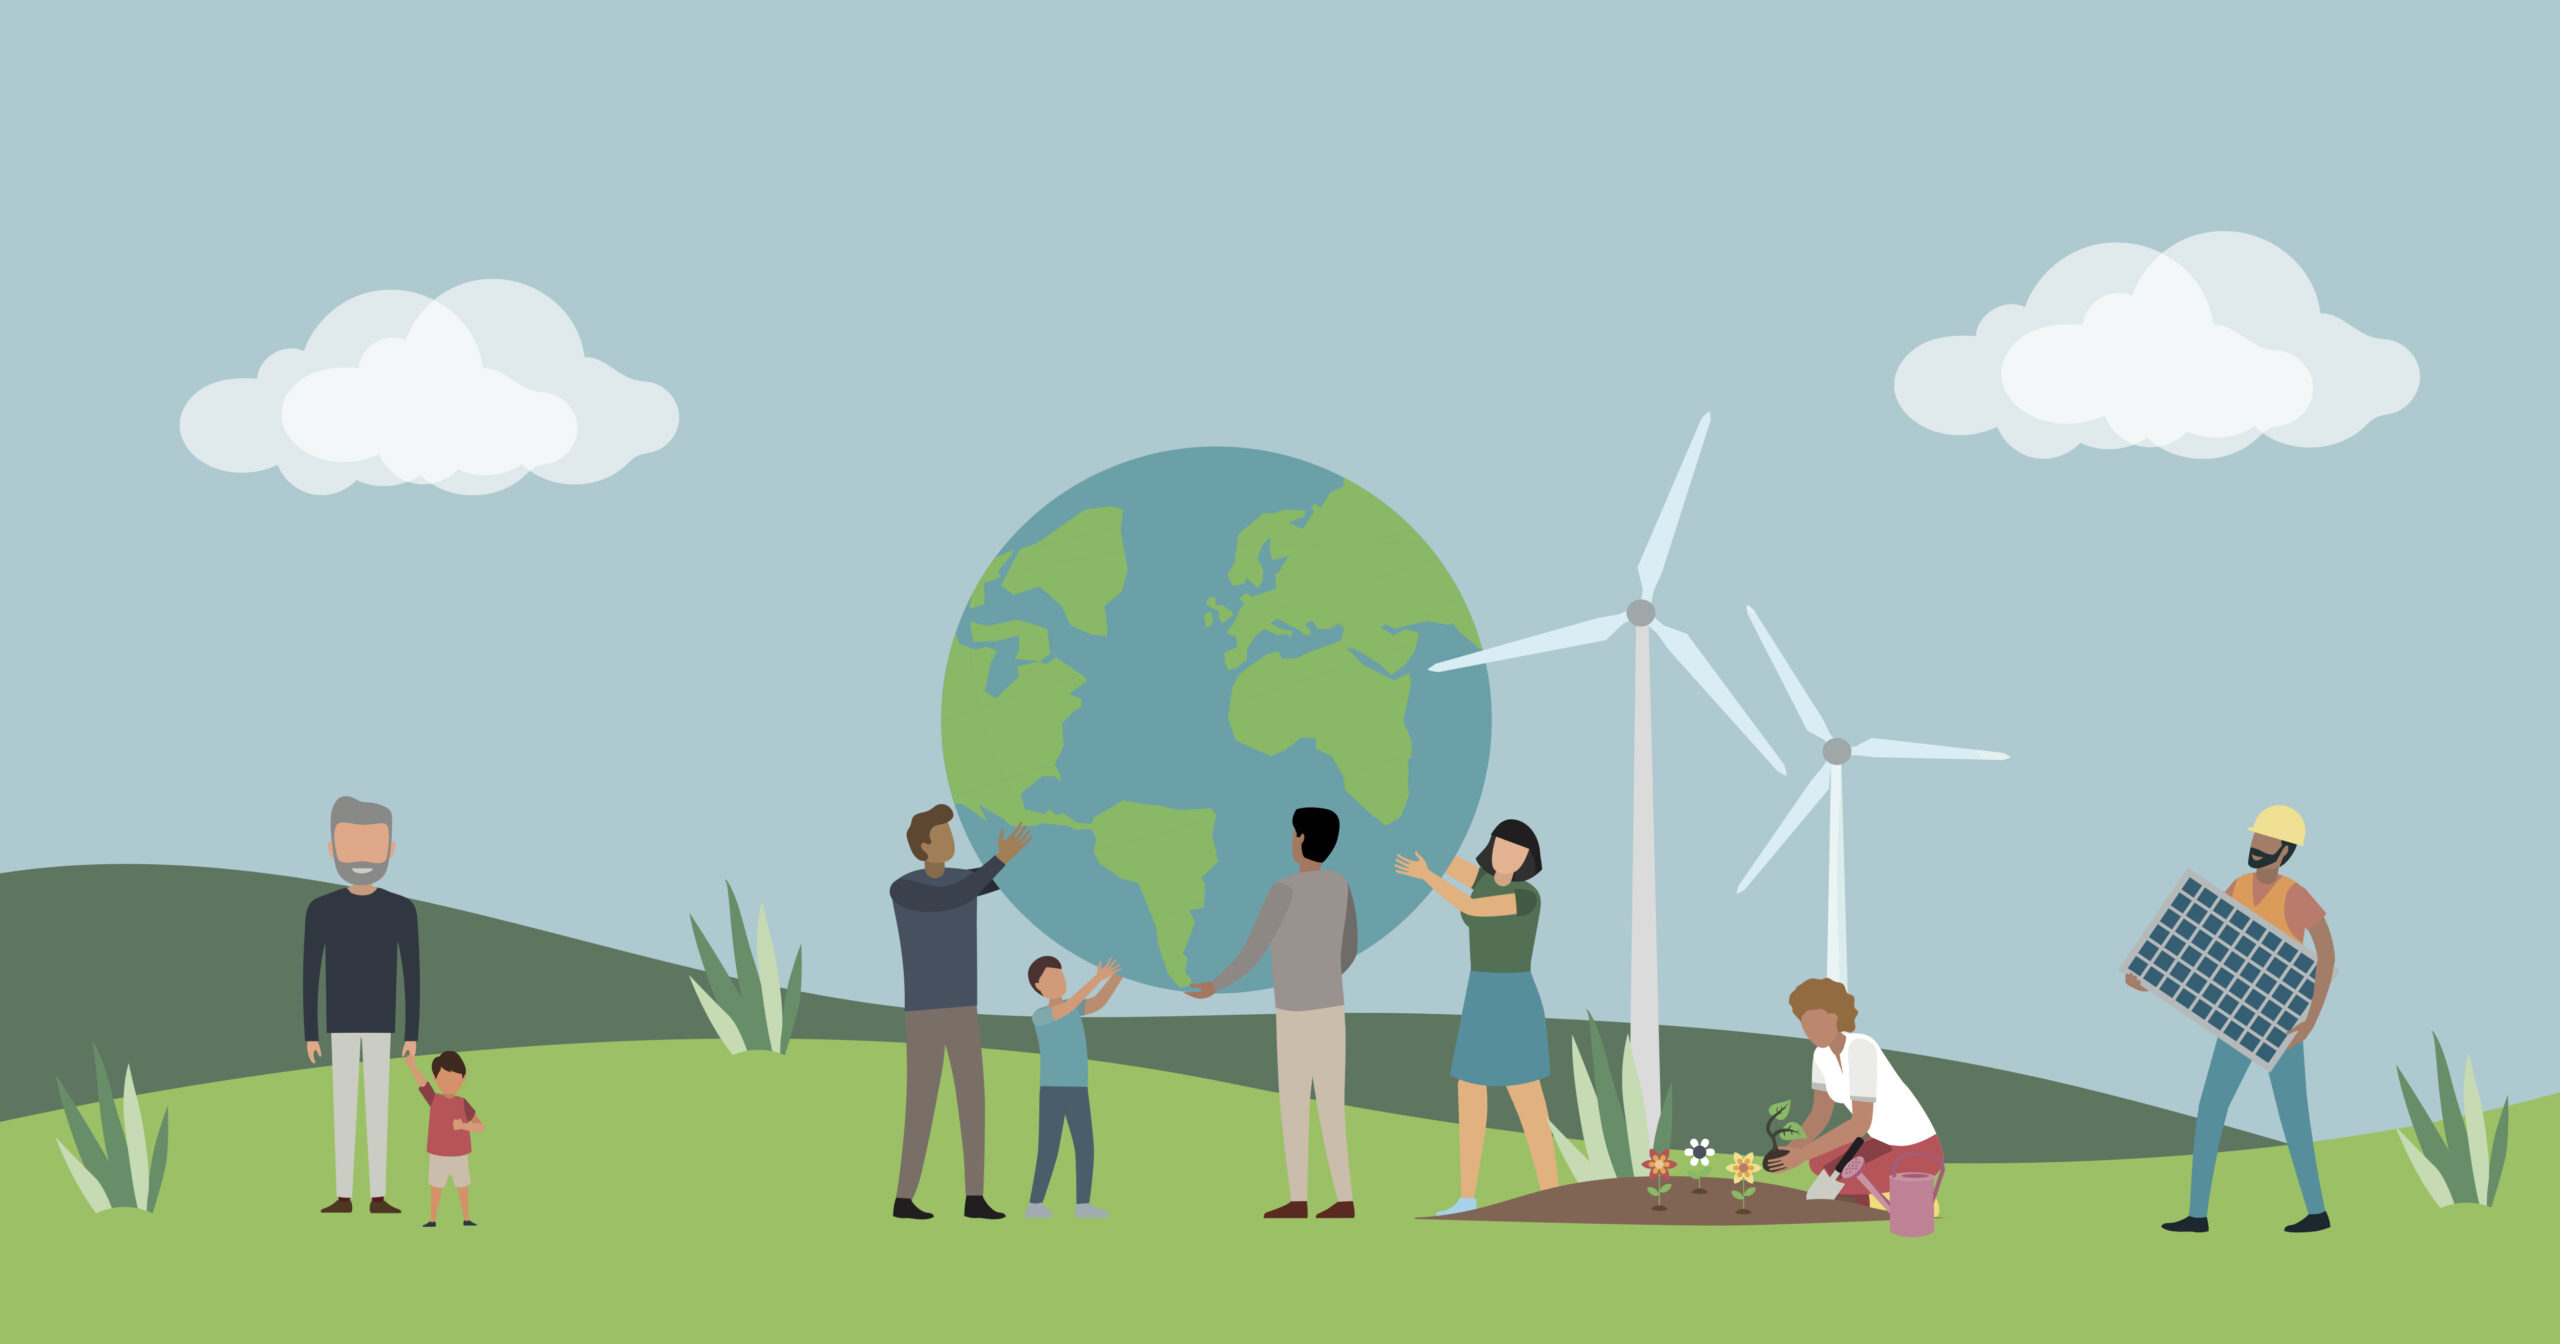 Graphic of people holding up the earth, wind turbines, solar panels